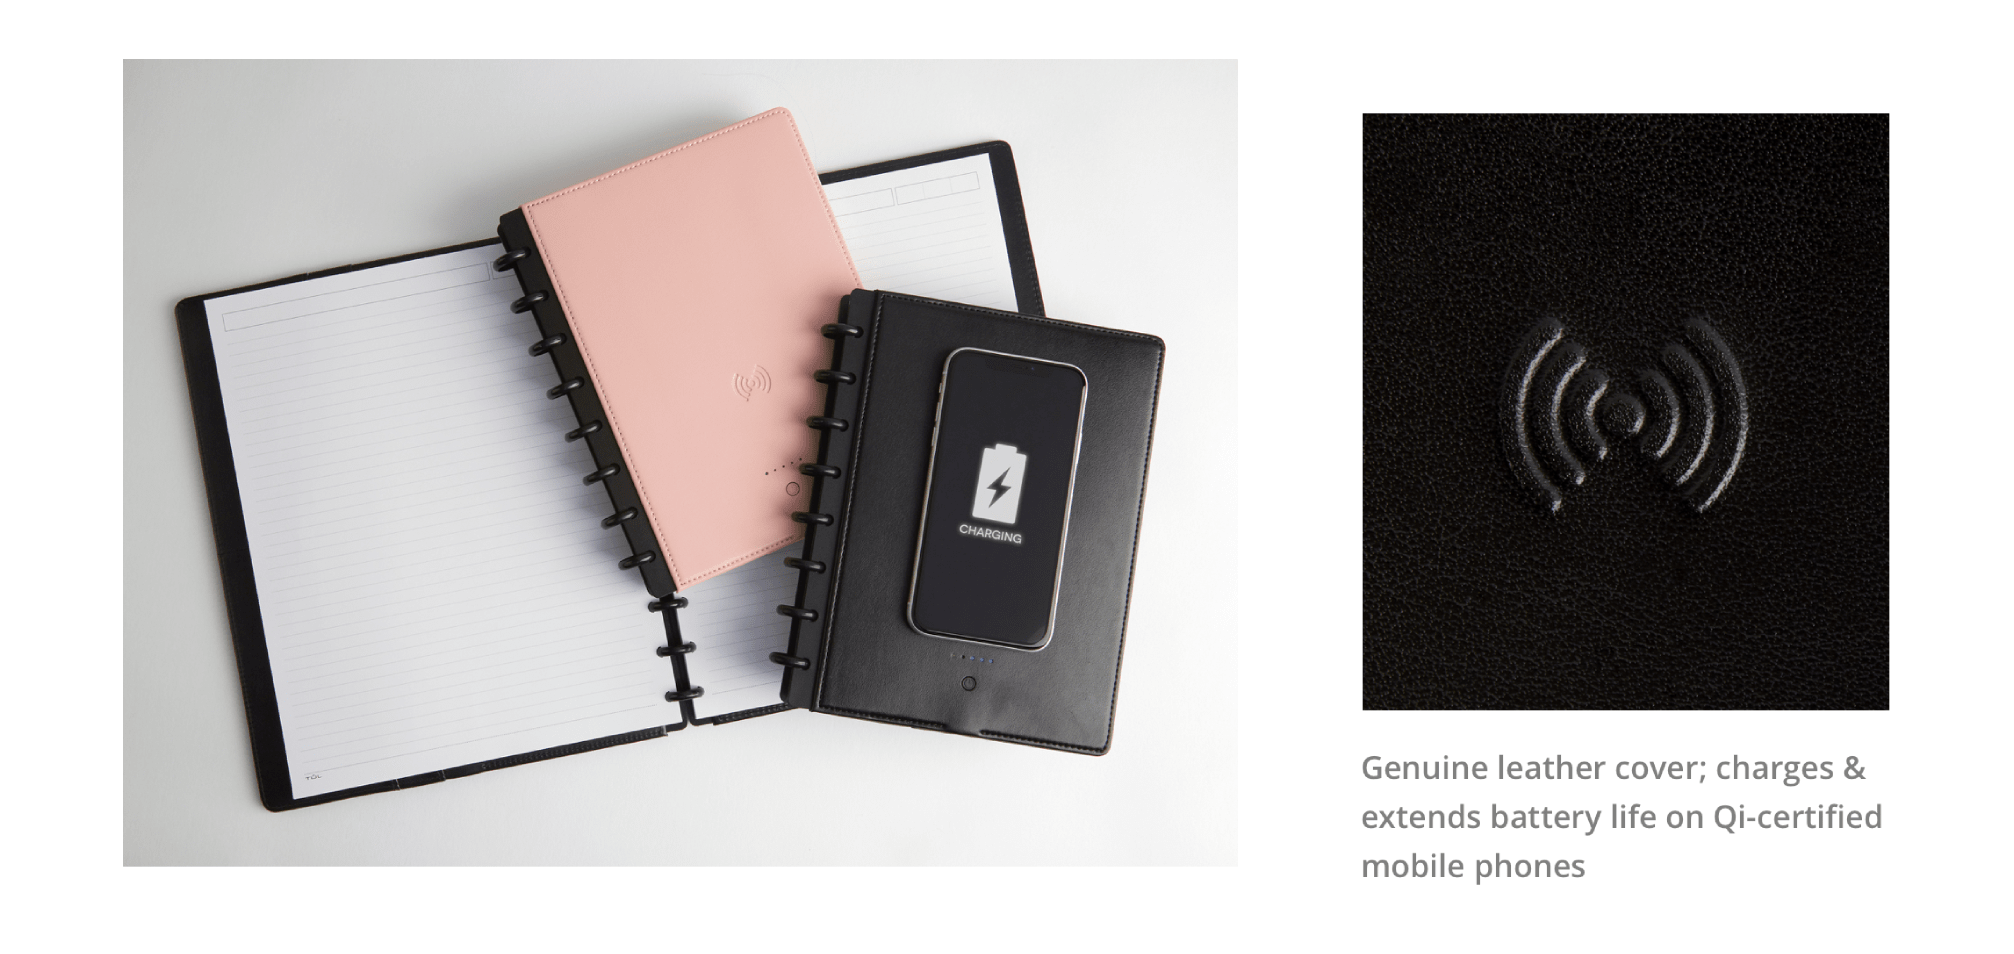 Genuine leather cover; charges & extends battery life on Qi-certified mobile phones